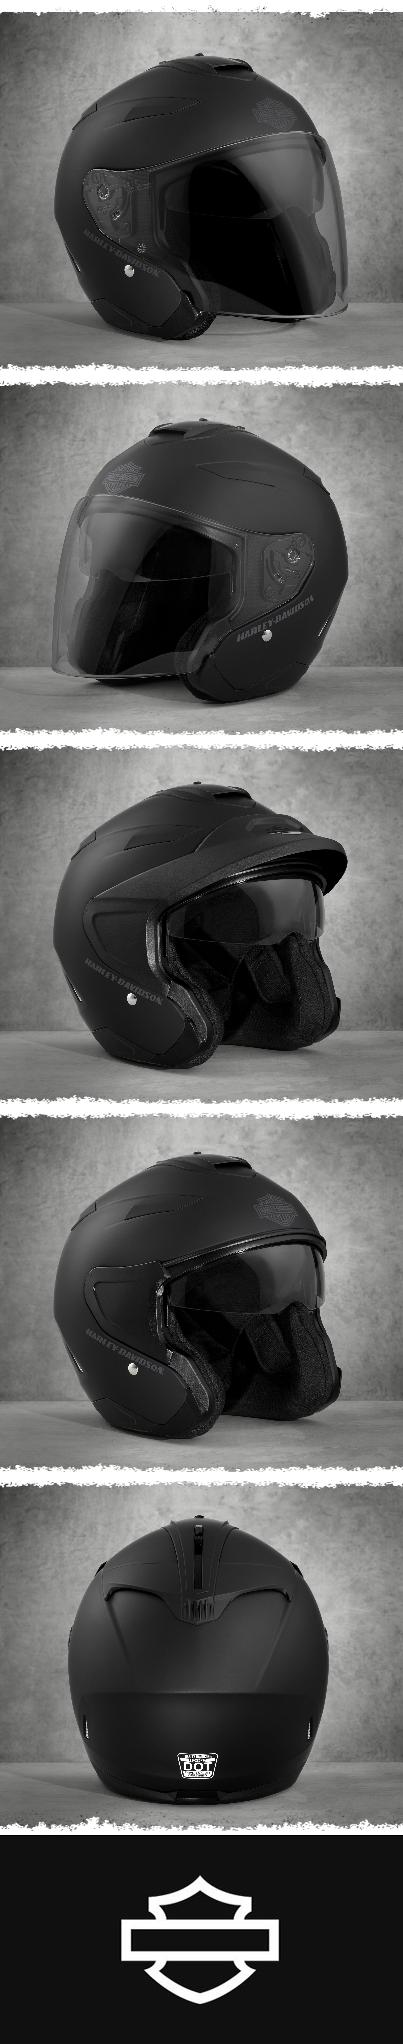 215398736 Maywood Interchangeable Sun Shield H27 3/4 Helmet | Protect What ...